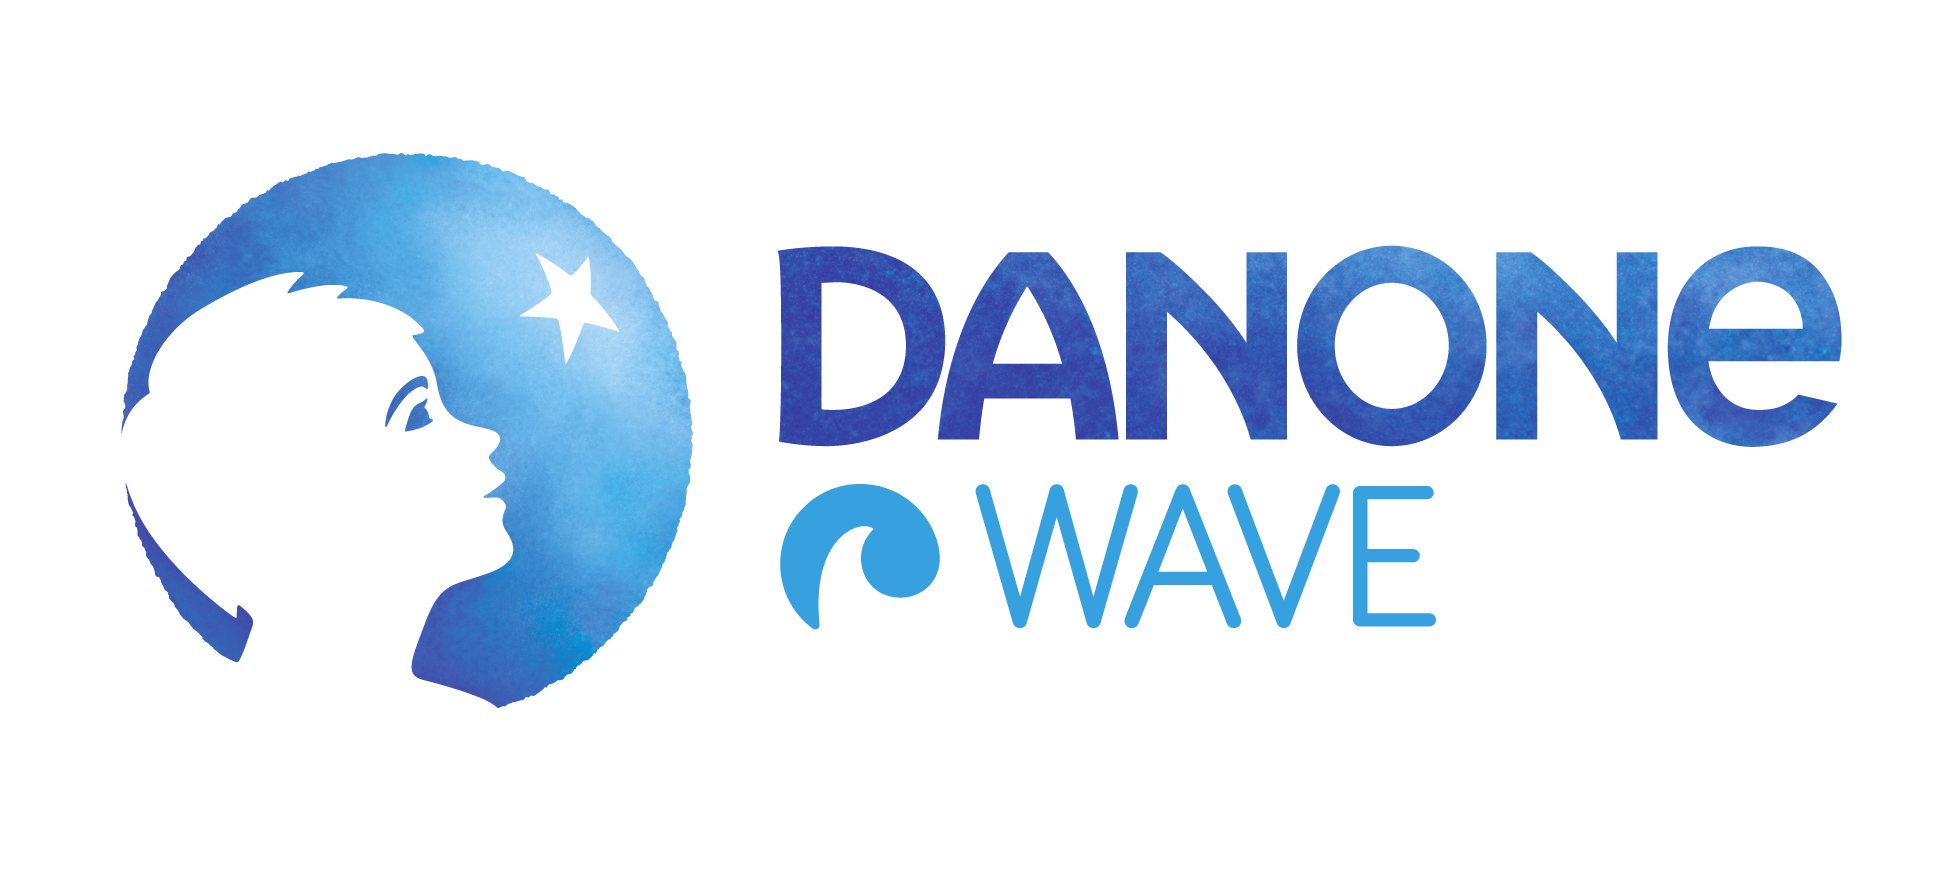 Danone Divisions Wave RGB-01 (1).png